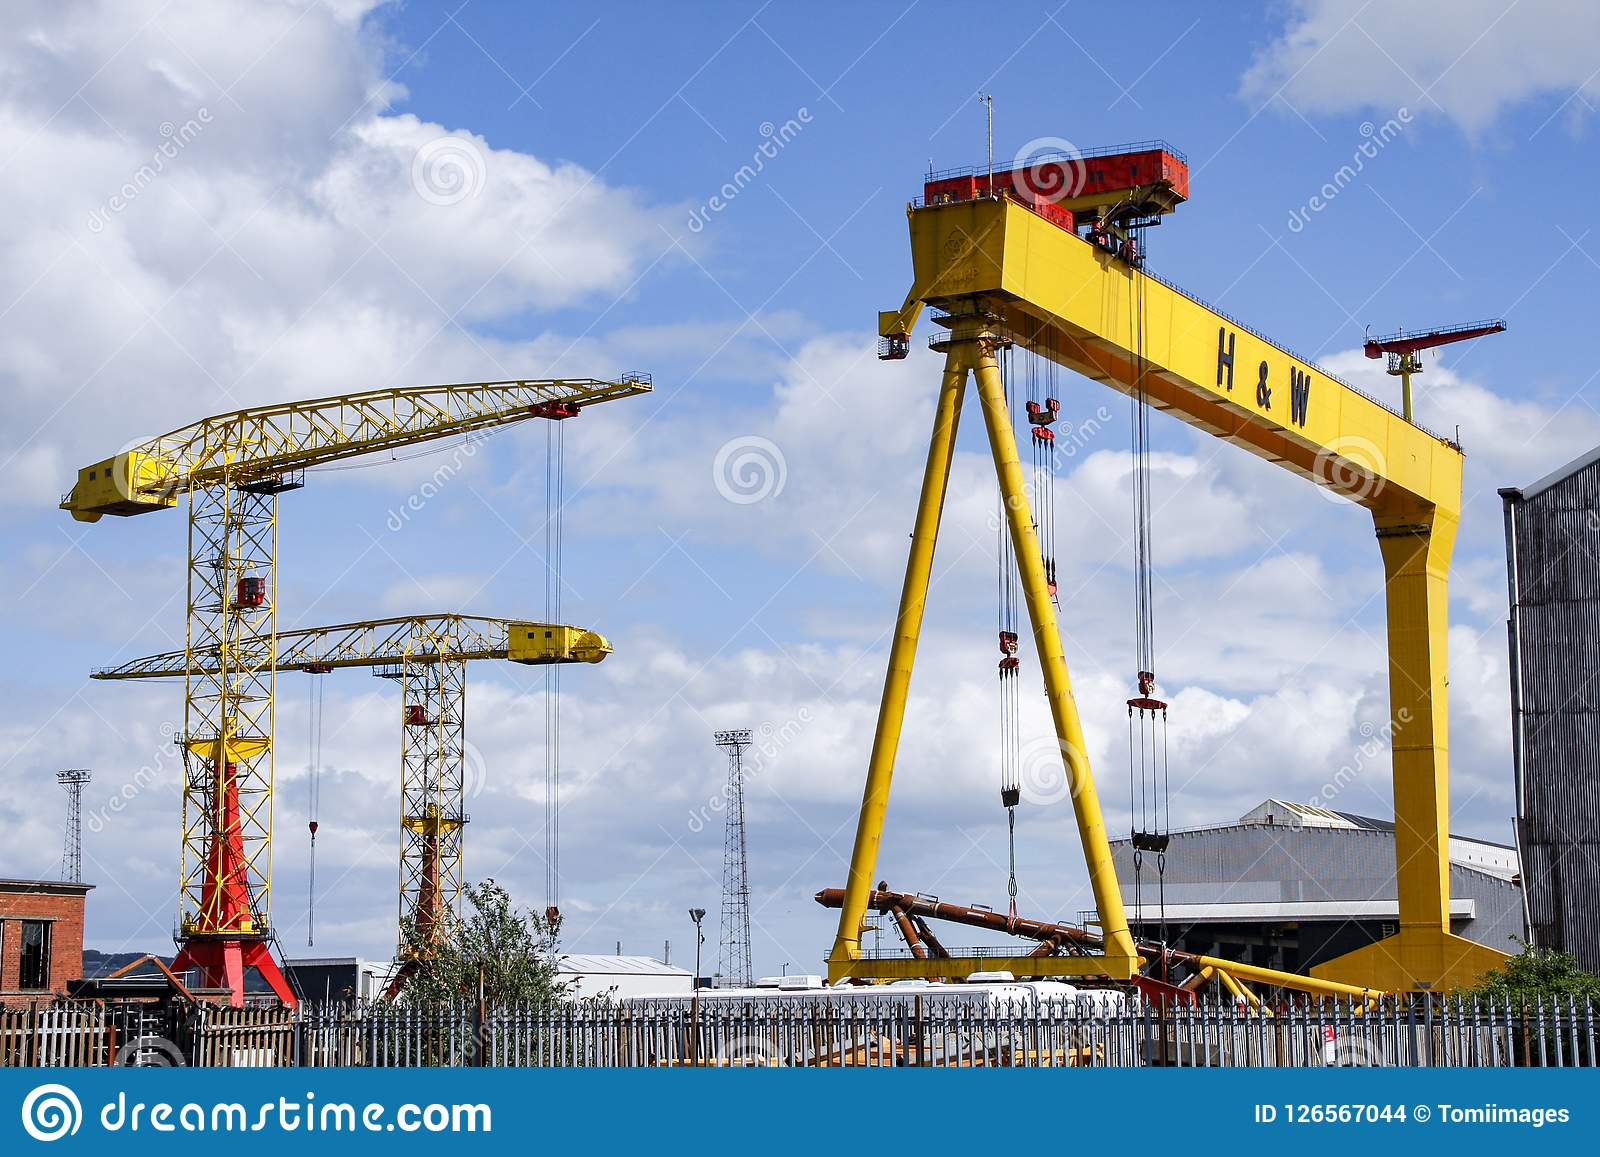 One of the famous yellow Harland and Wolff cranes in Belfast